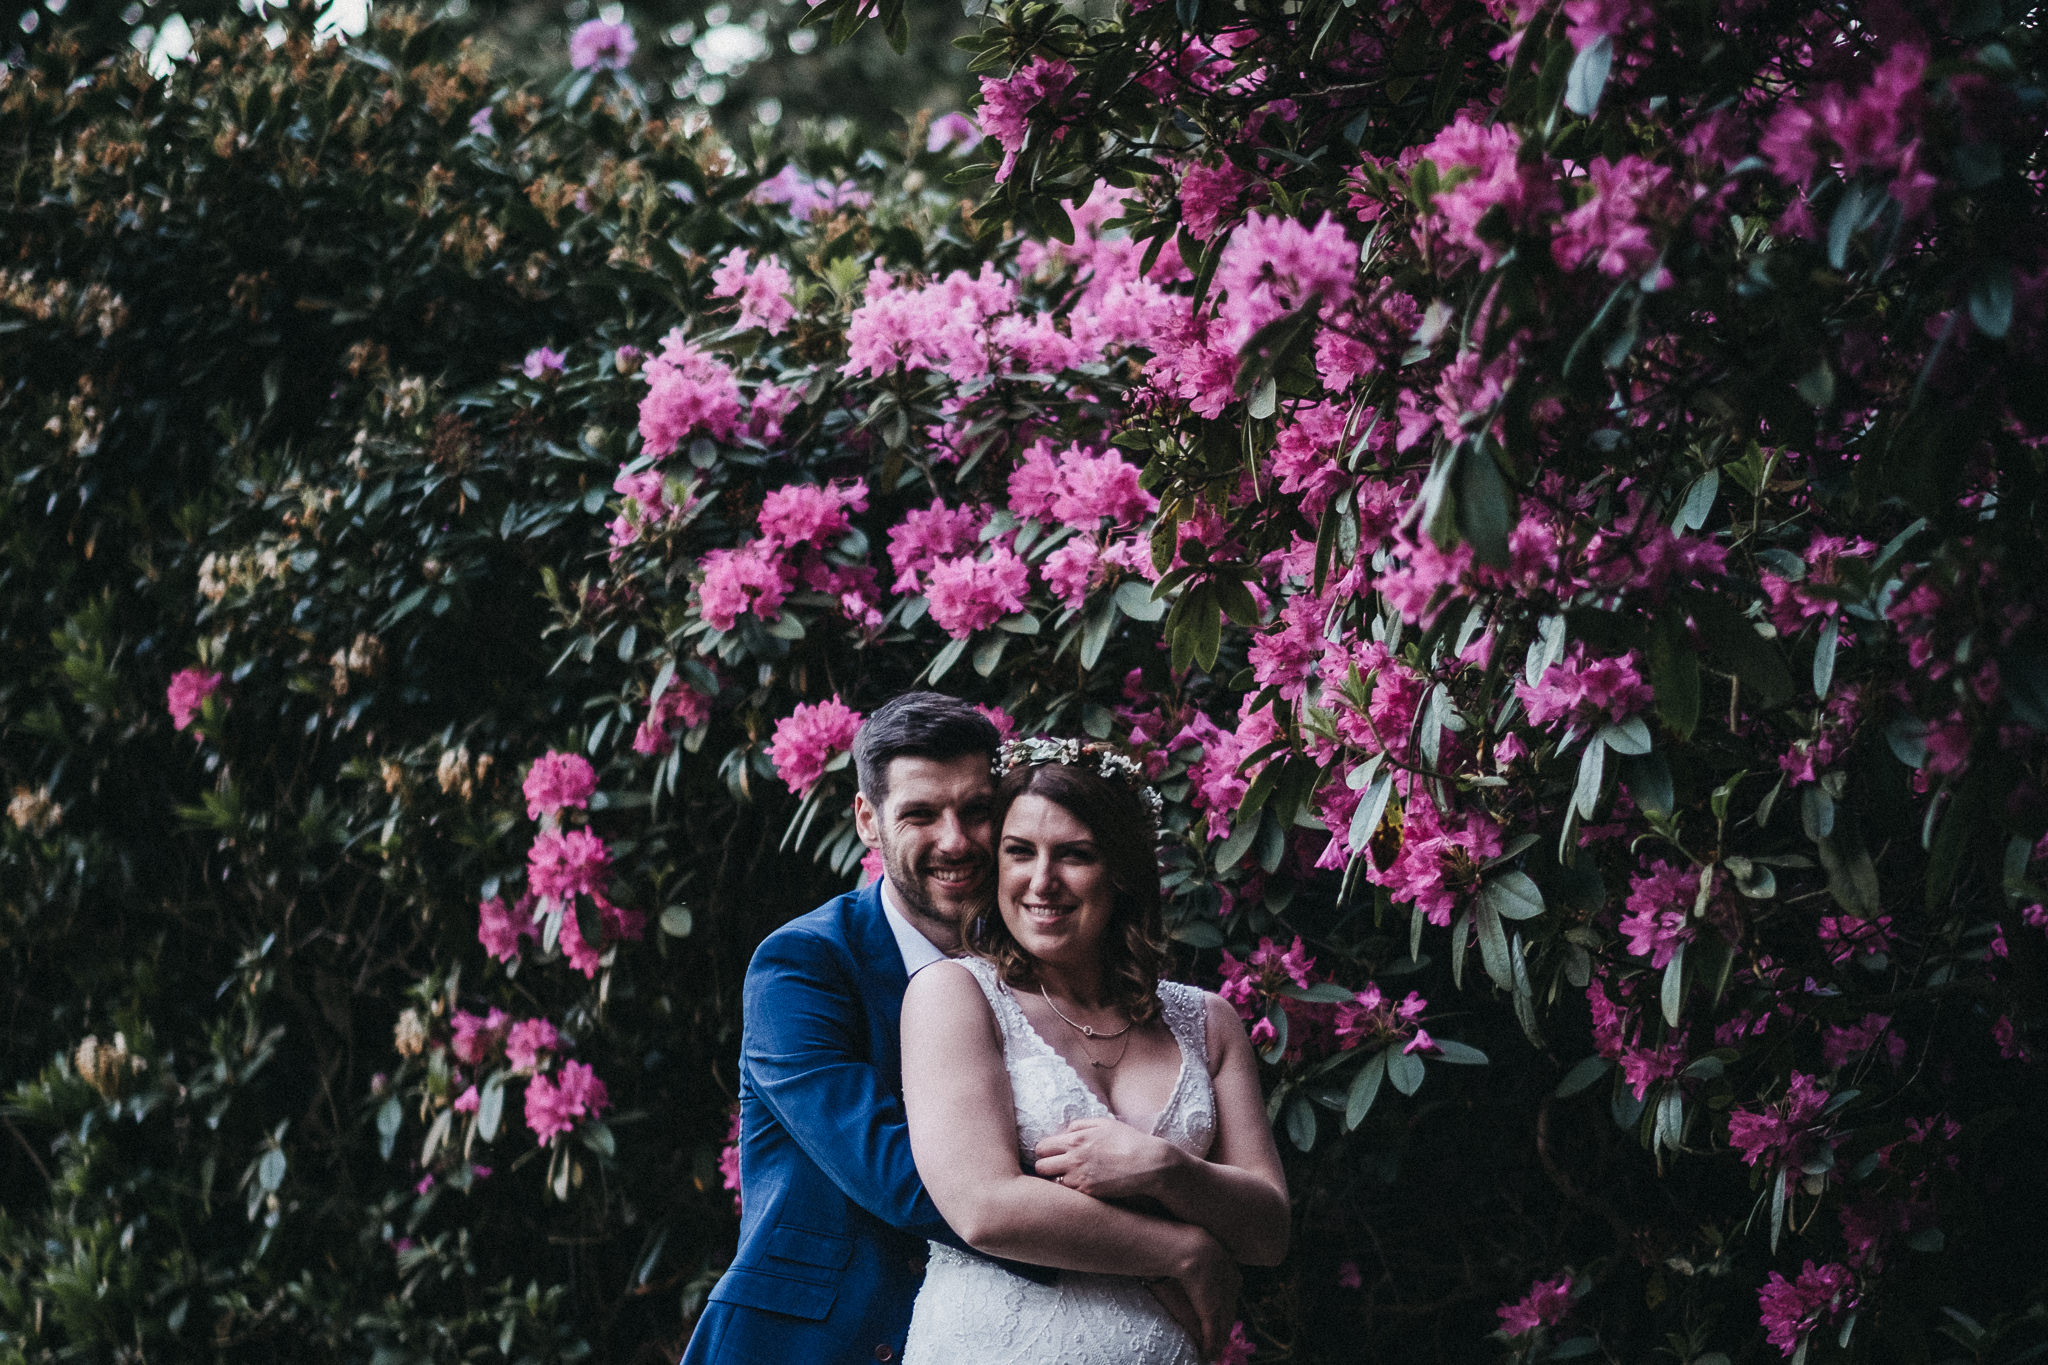 Rachel & Chris - A lovely guy who knows his stuff and always puts you first. Had Barry photo our wedding and couldn't be happier with how the day went. Definitely a must go to if you need wedding photography!